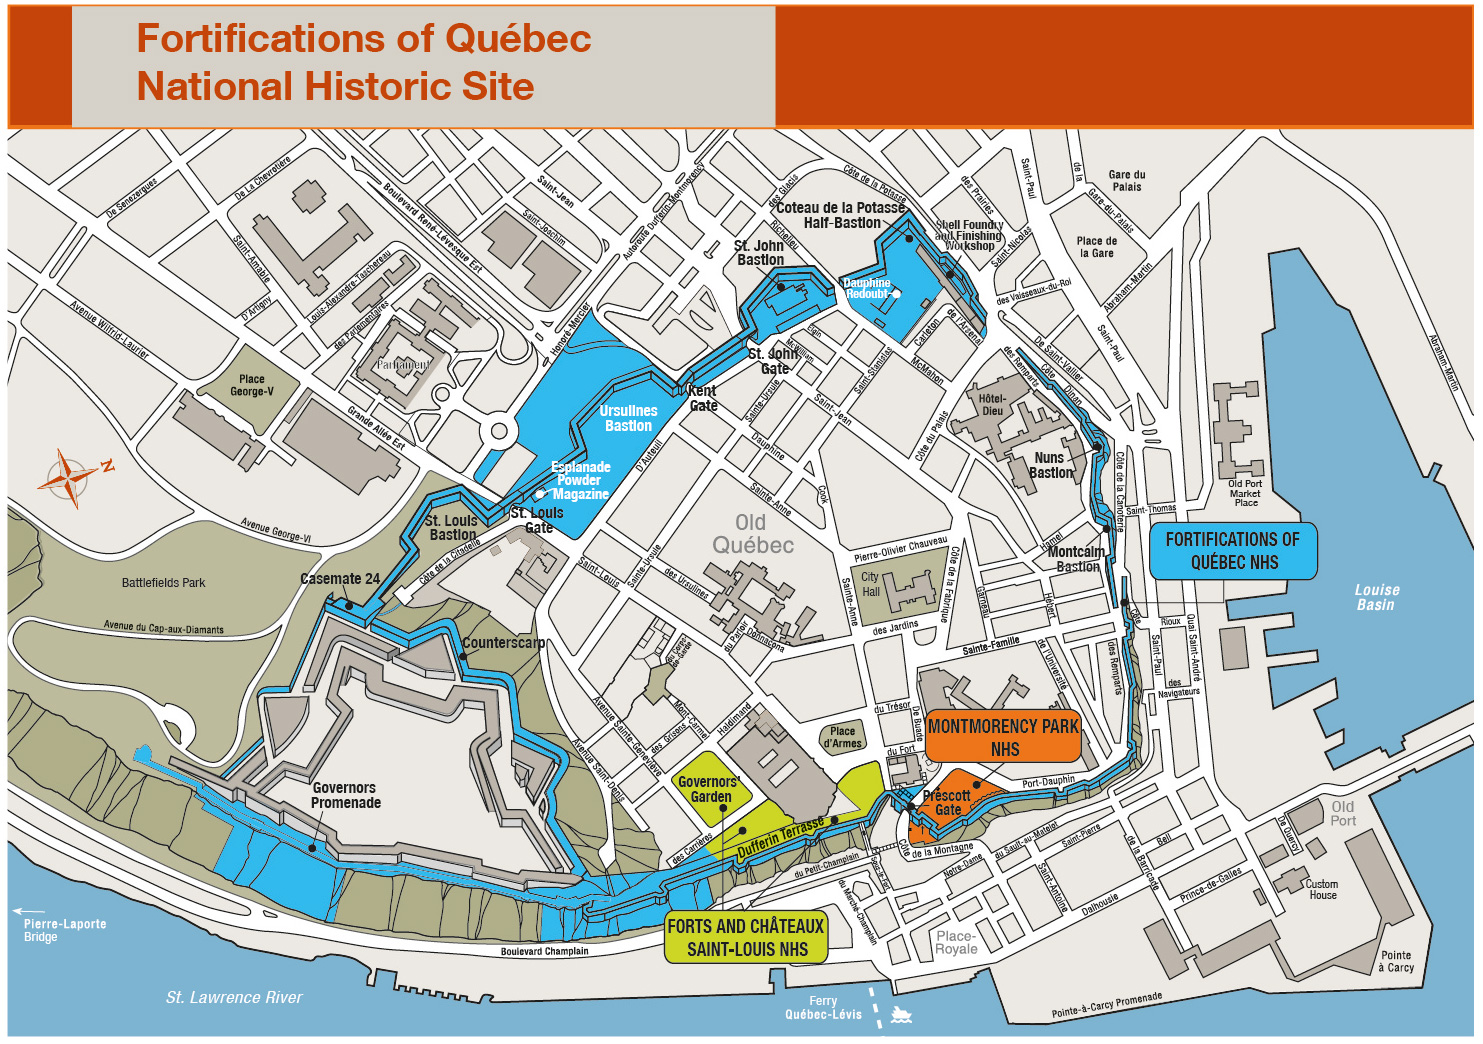 Fortifications of Québec National Historic Site of Canada ... on boston walking maps, paris walking maps, las vegas walking maps, san francisco walking maps, amsterdam walking maps, seattle walking maps, london walking maps, montreal walking maps, washington dc walking maps, italy walking maps, shanghai walking maps, ohio walking maps, vancouver walking maps,